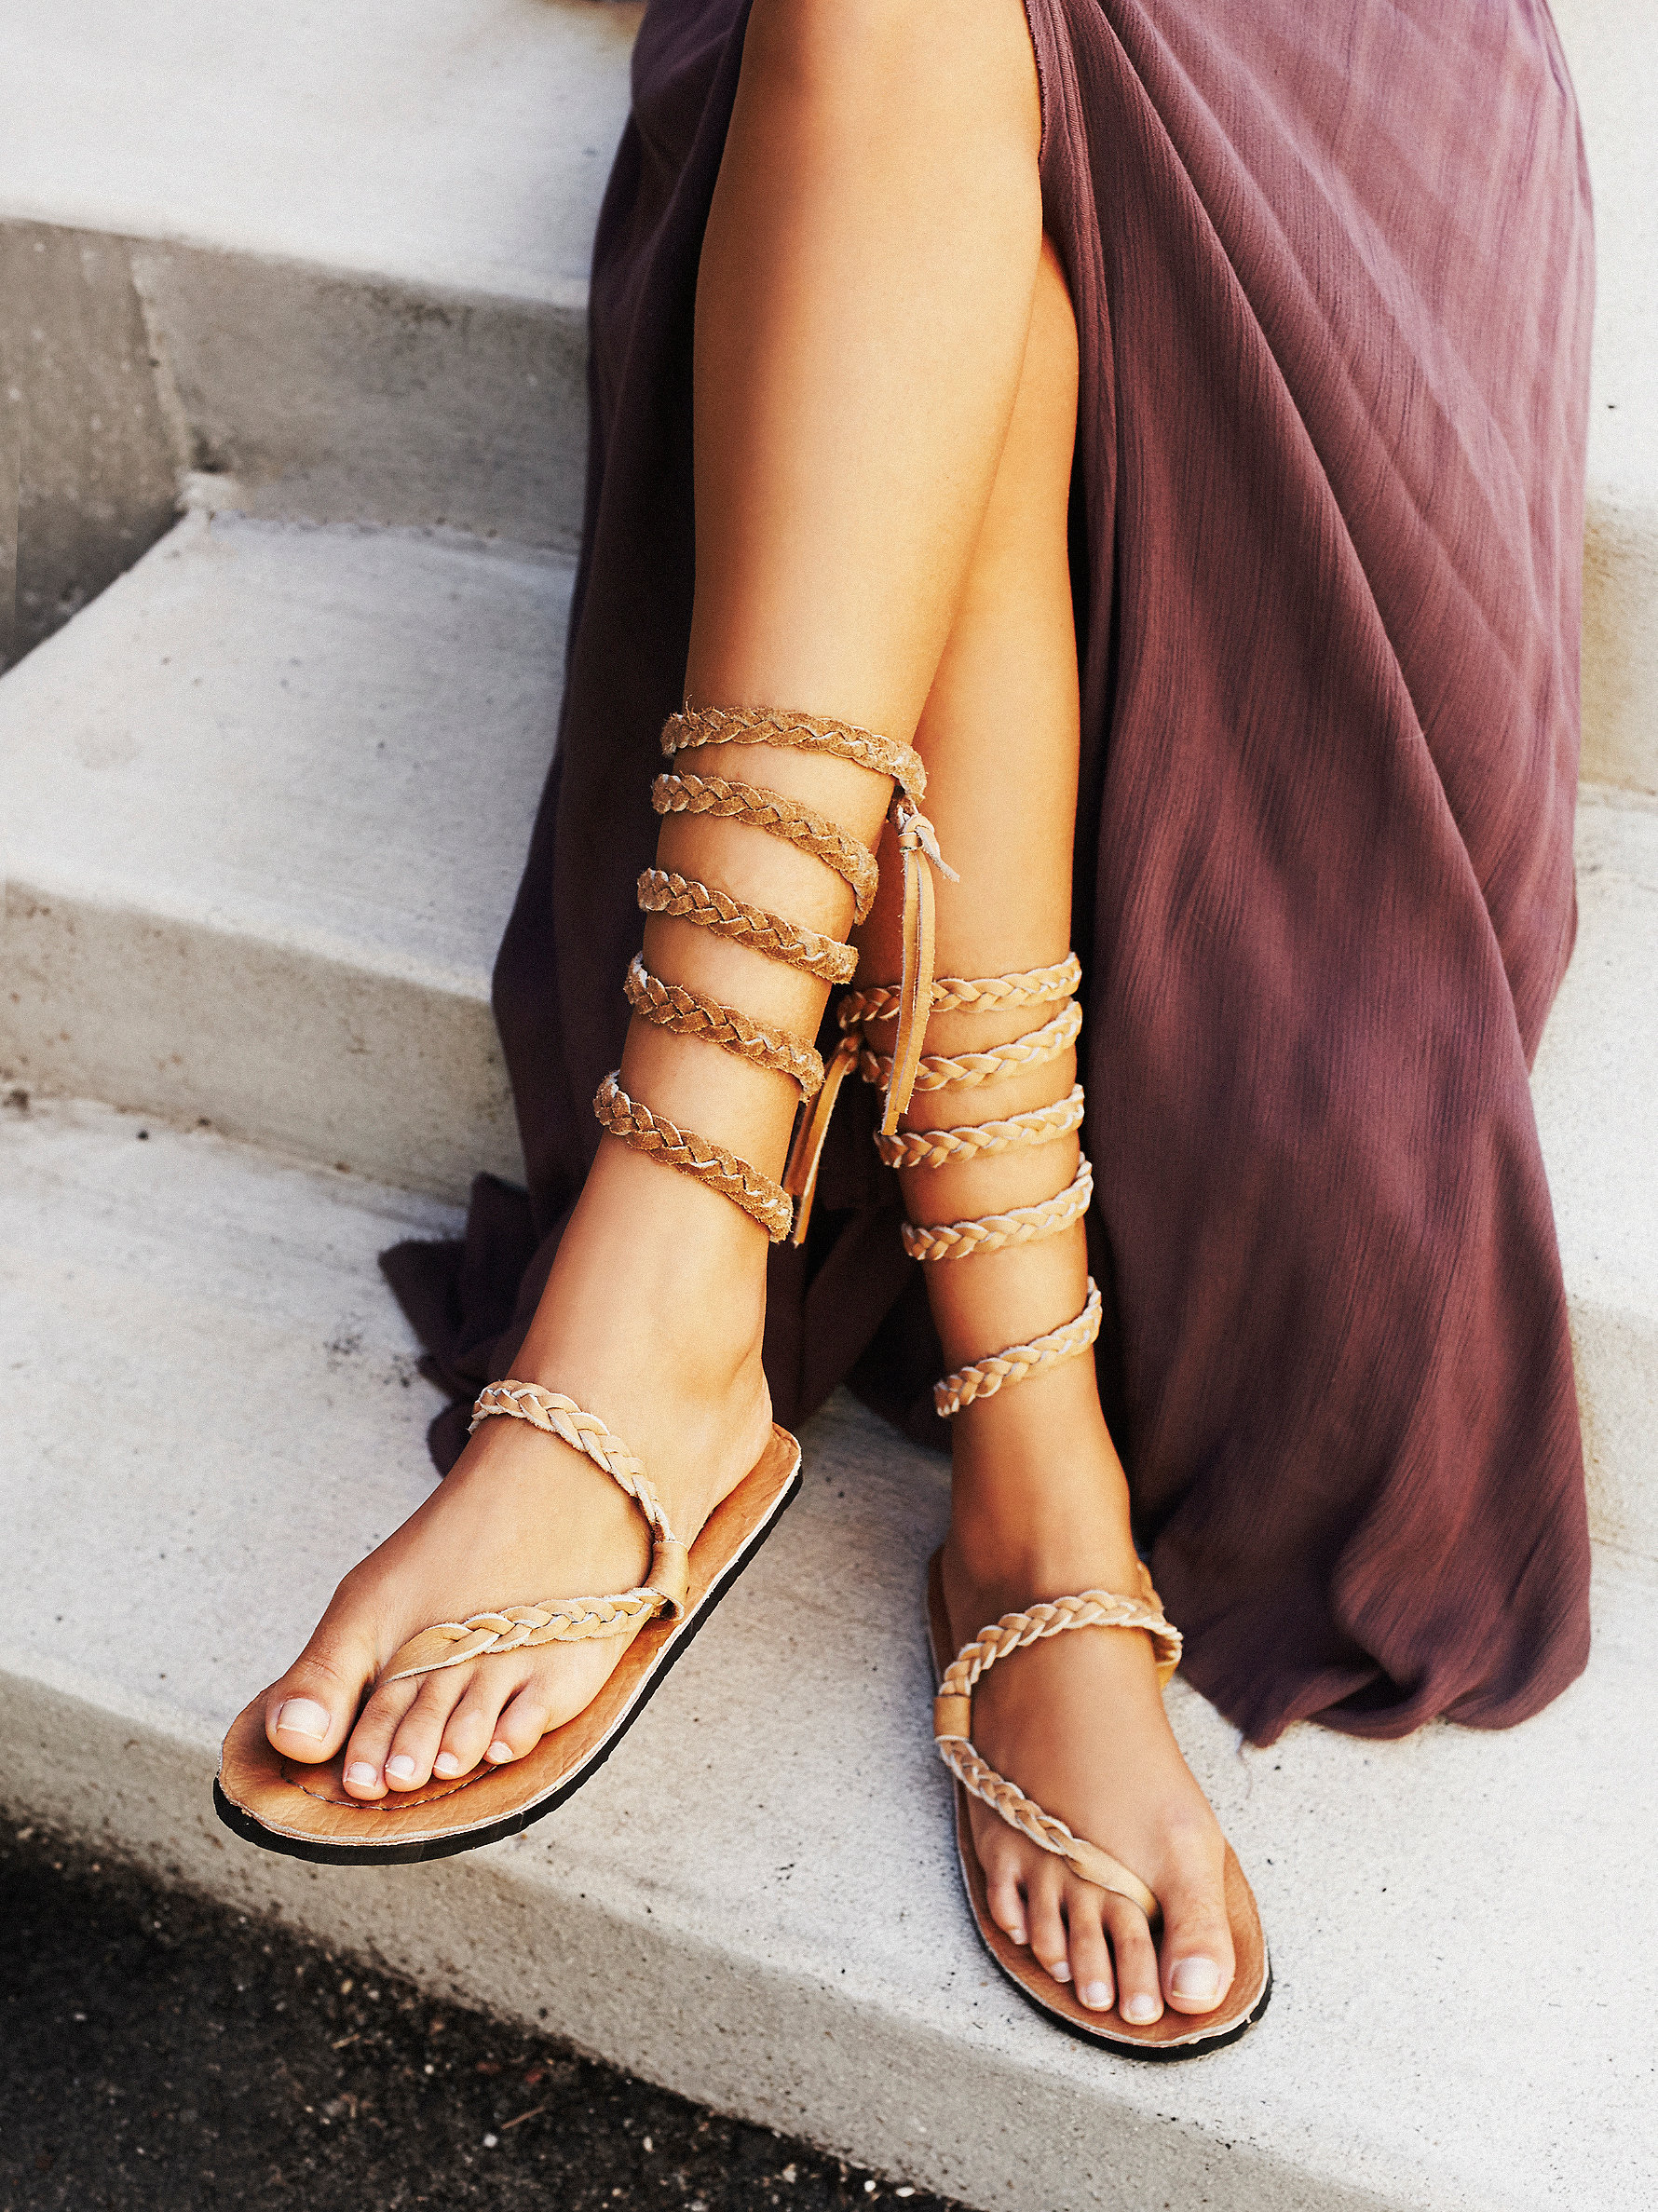 Free People S Sexy Strappy Sandals Style And Cheek